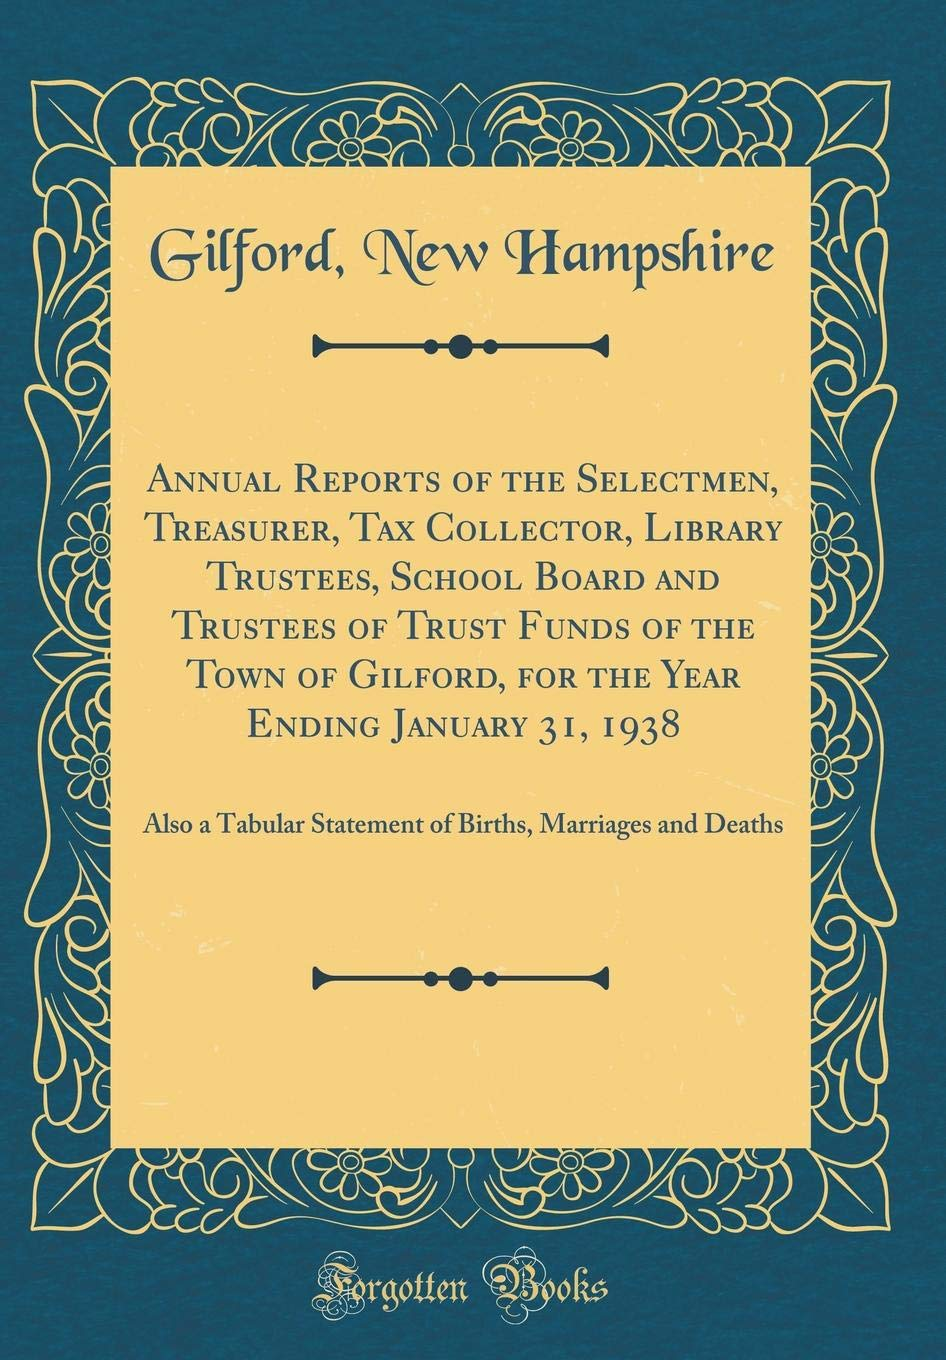 Download Annual Reports of the Selectmen, Treasurer, Tax Collector, Library Trustees, School Board and Trustees of Trust Funds of the Town of Gilford, for the ... Marriages and Deaths (Classic Reprint) pdf epub